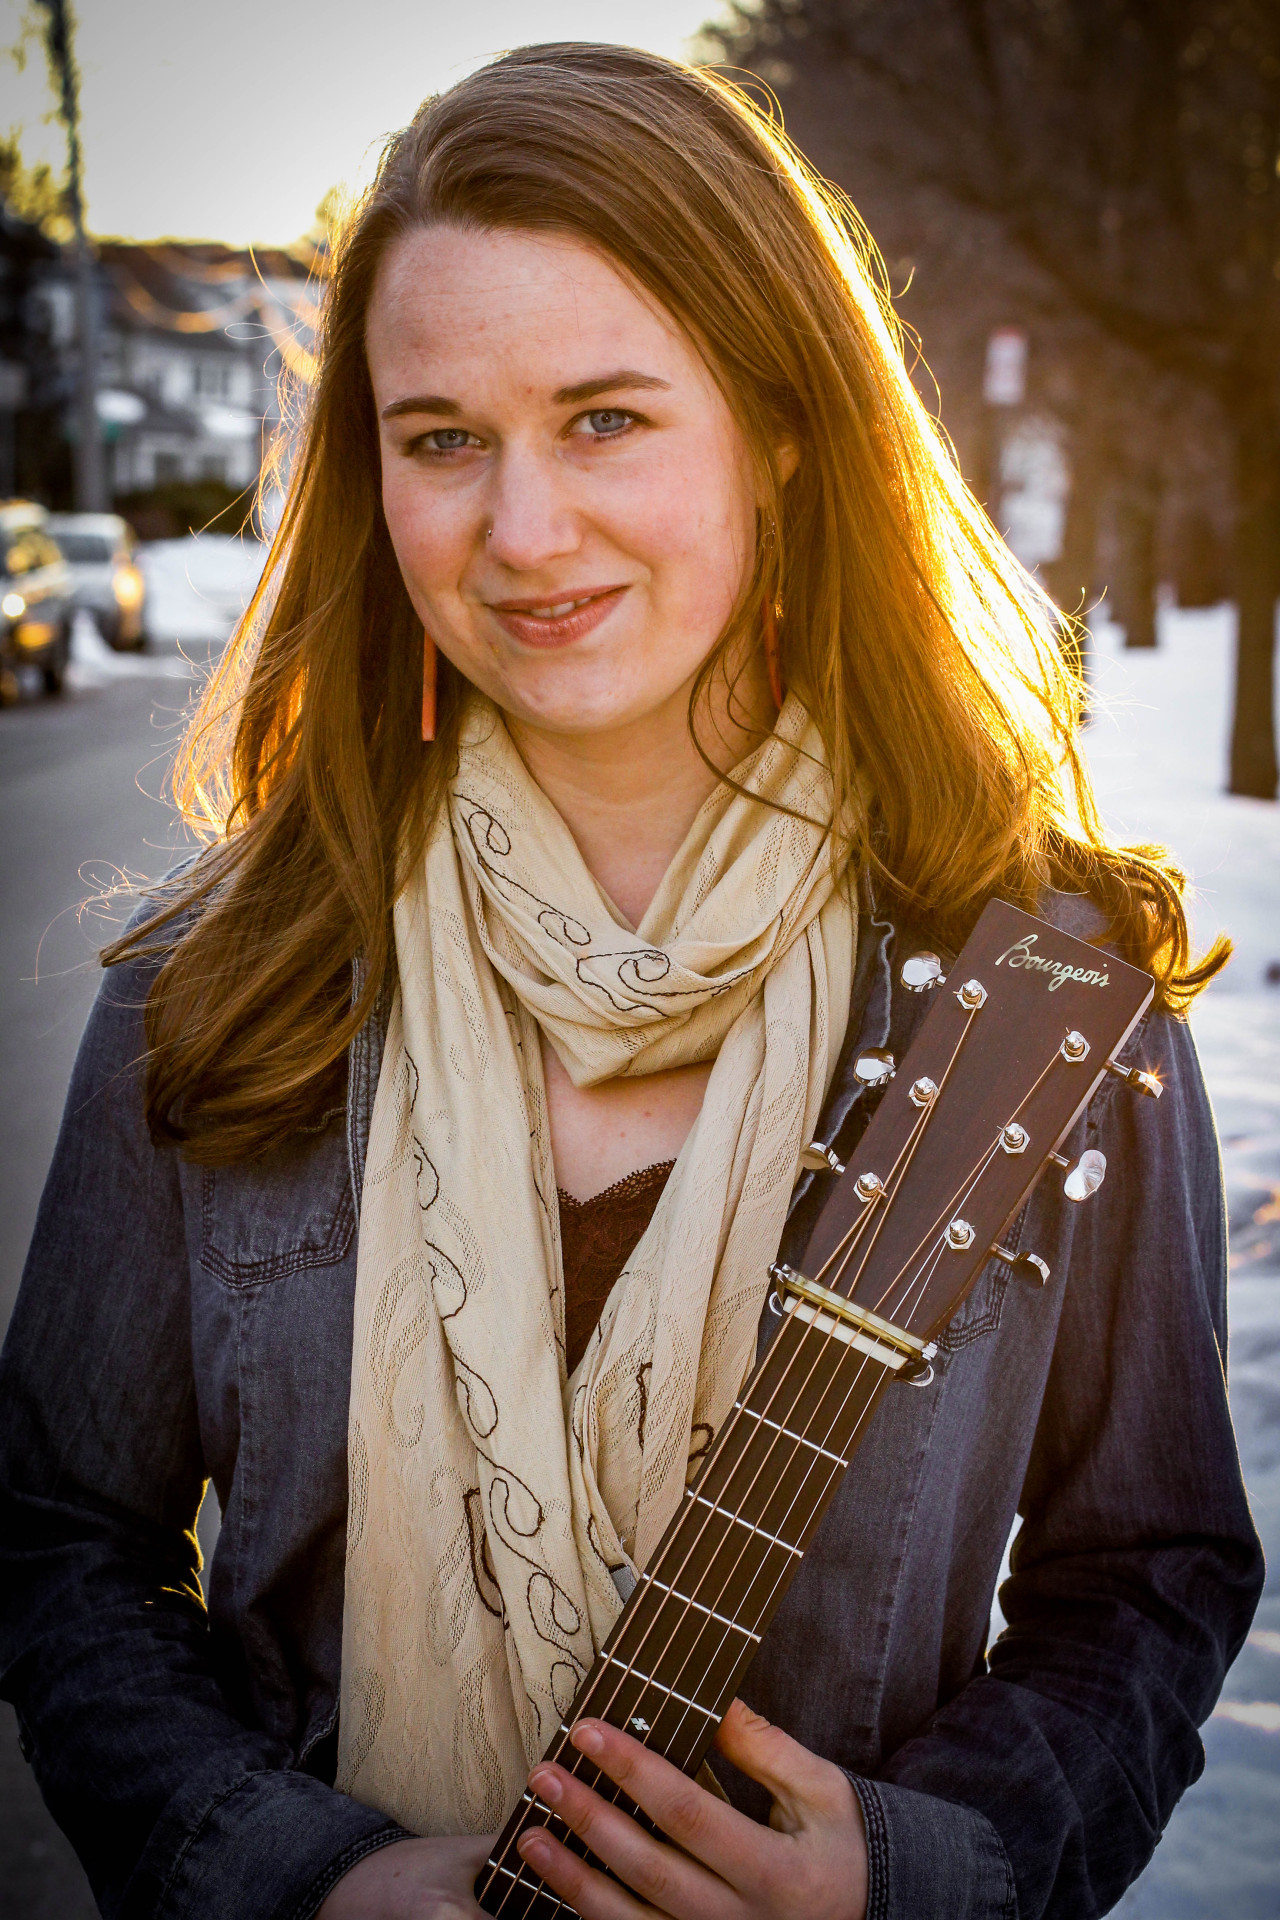 Photos of guitarist, Courtney Hartman, who plays in the bluegrass band, Della Mae.